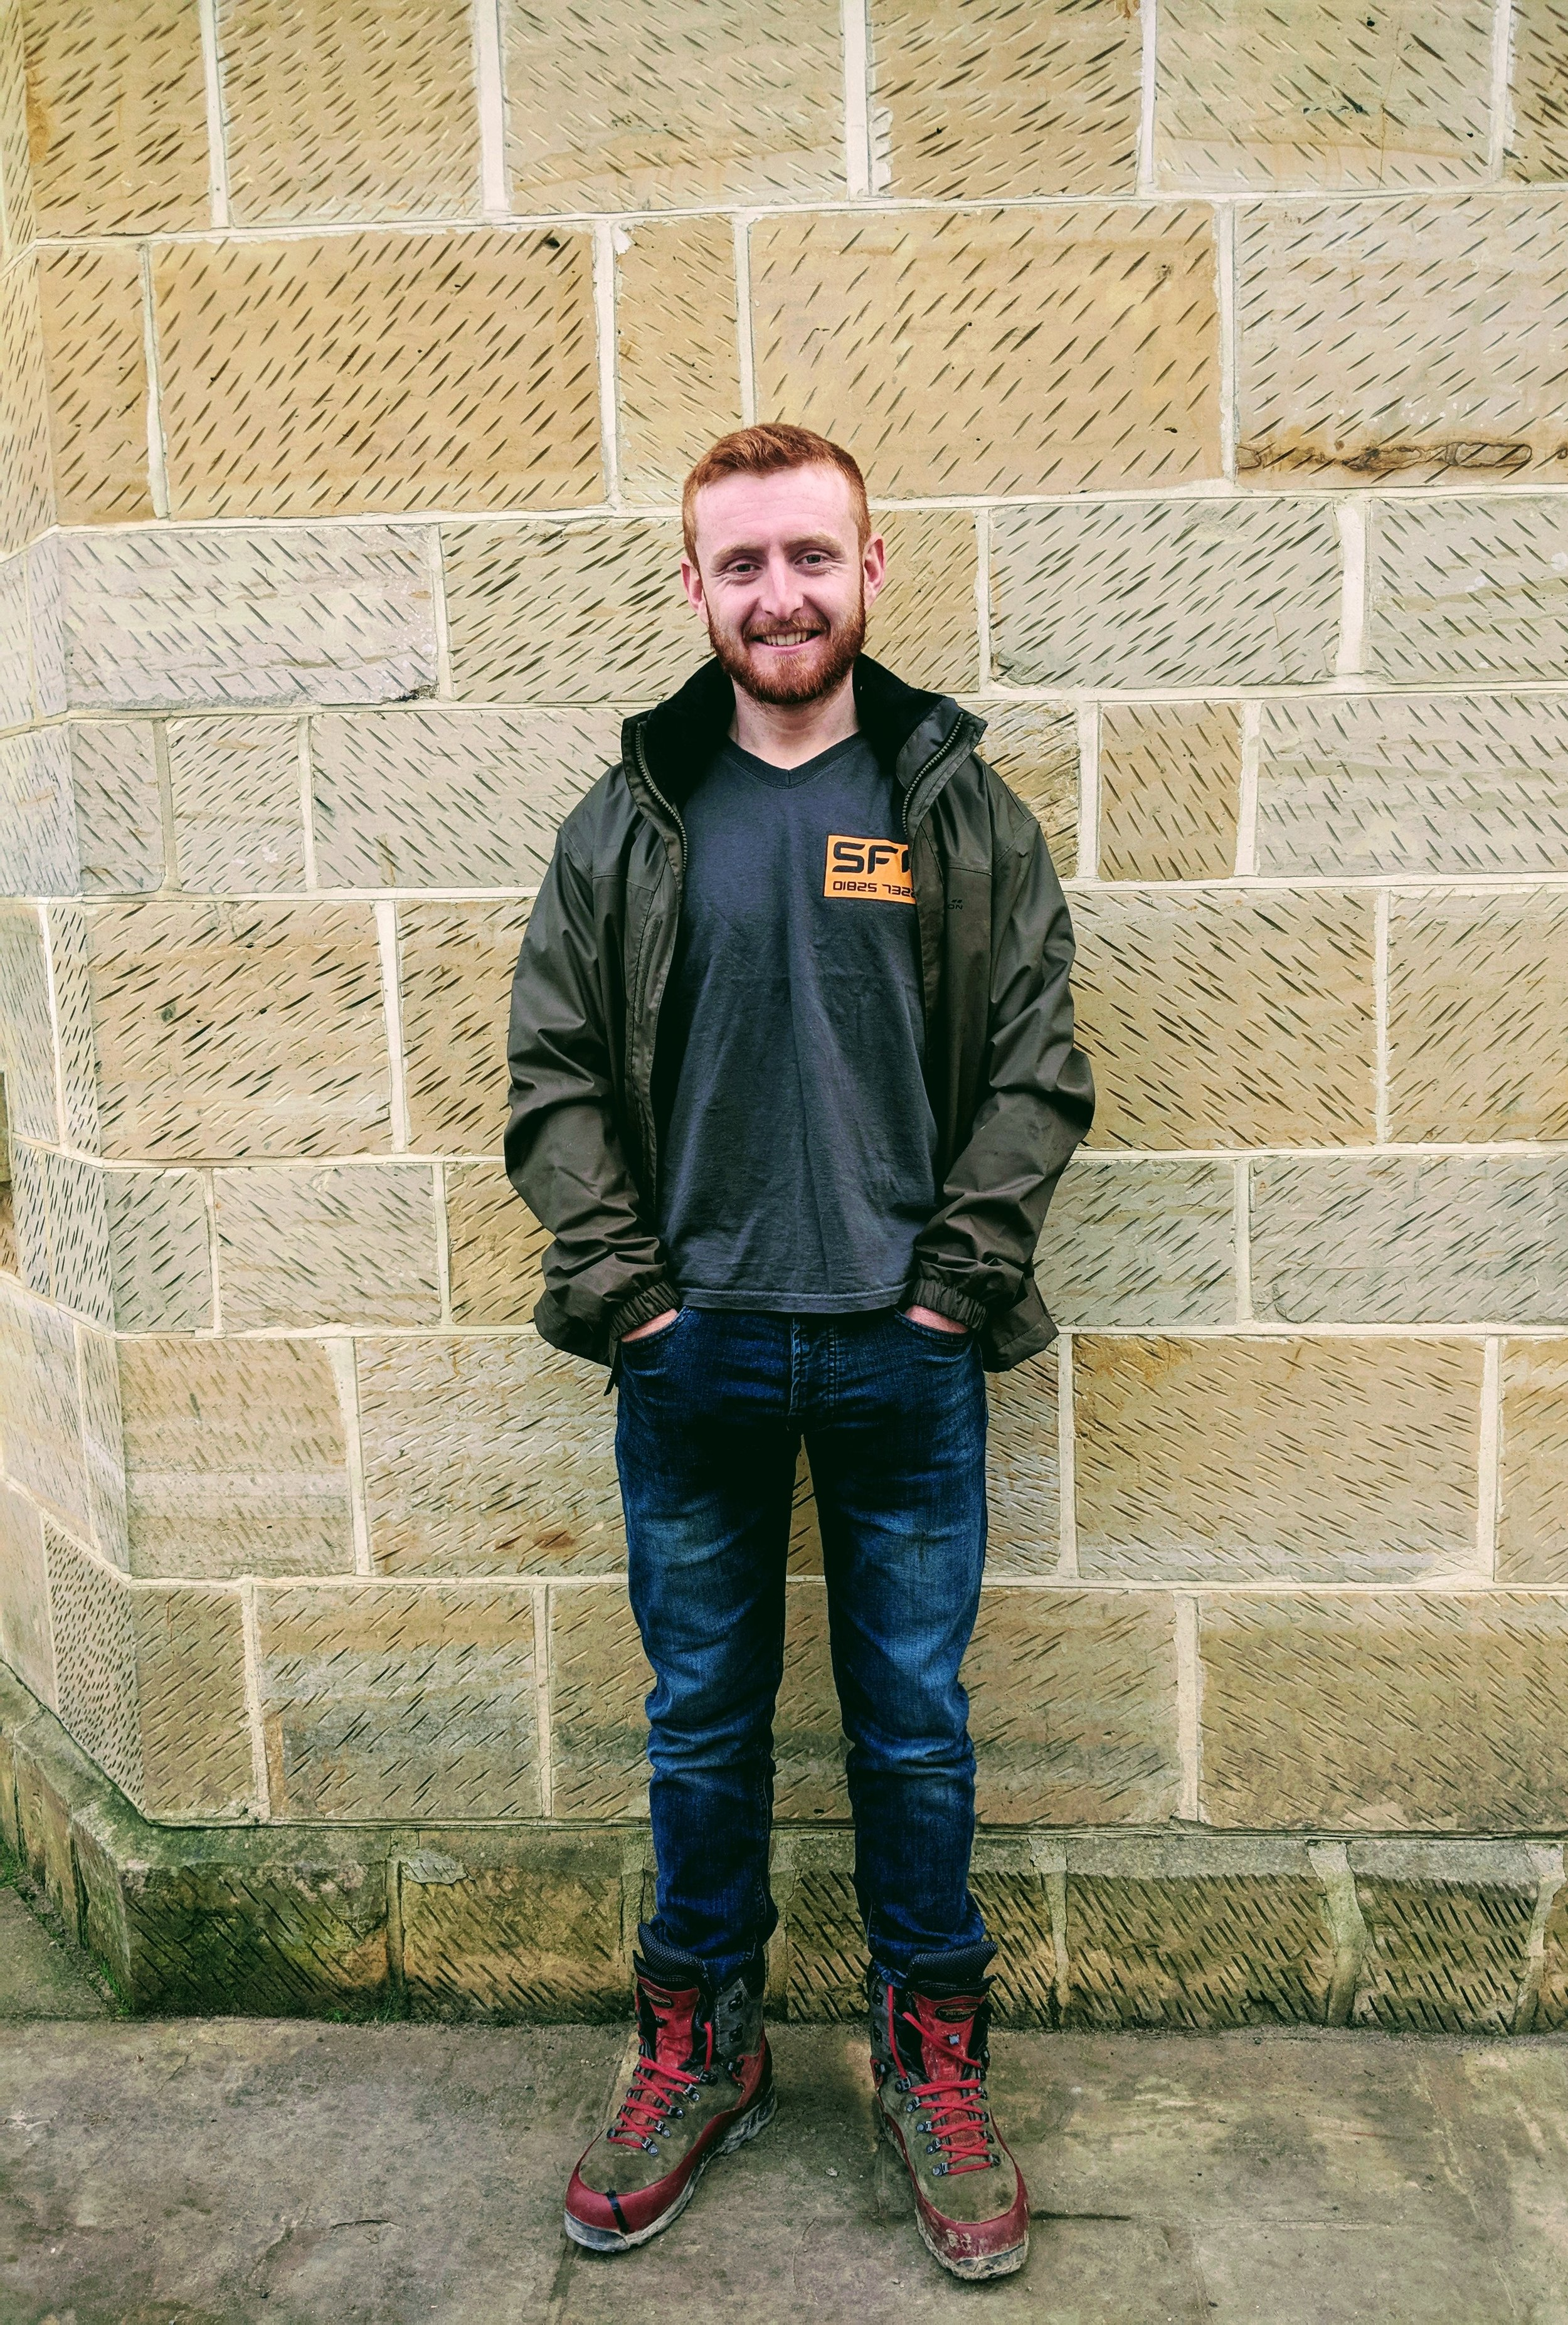 Sam - I started out on my own in early 2014, since then I have developed myself and my team to offer the top level service we do today.Constantly investing in training and equipment to broaden our knowledge and services.